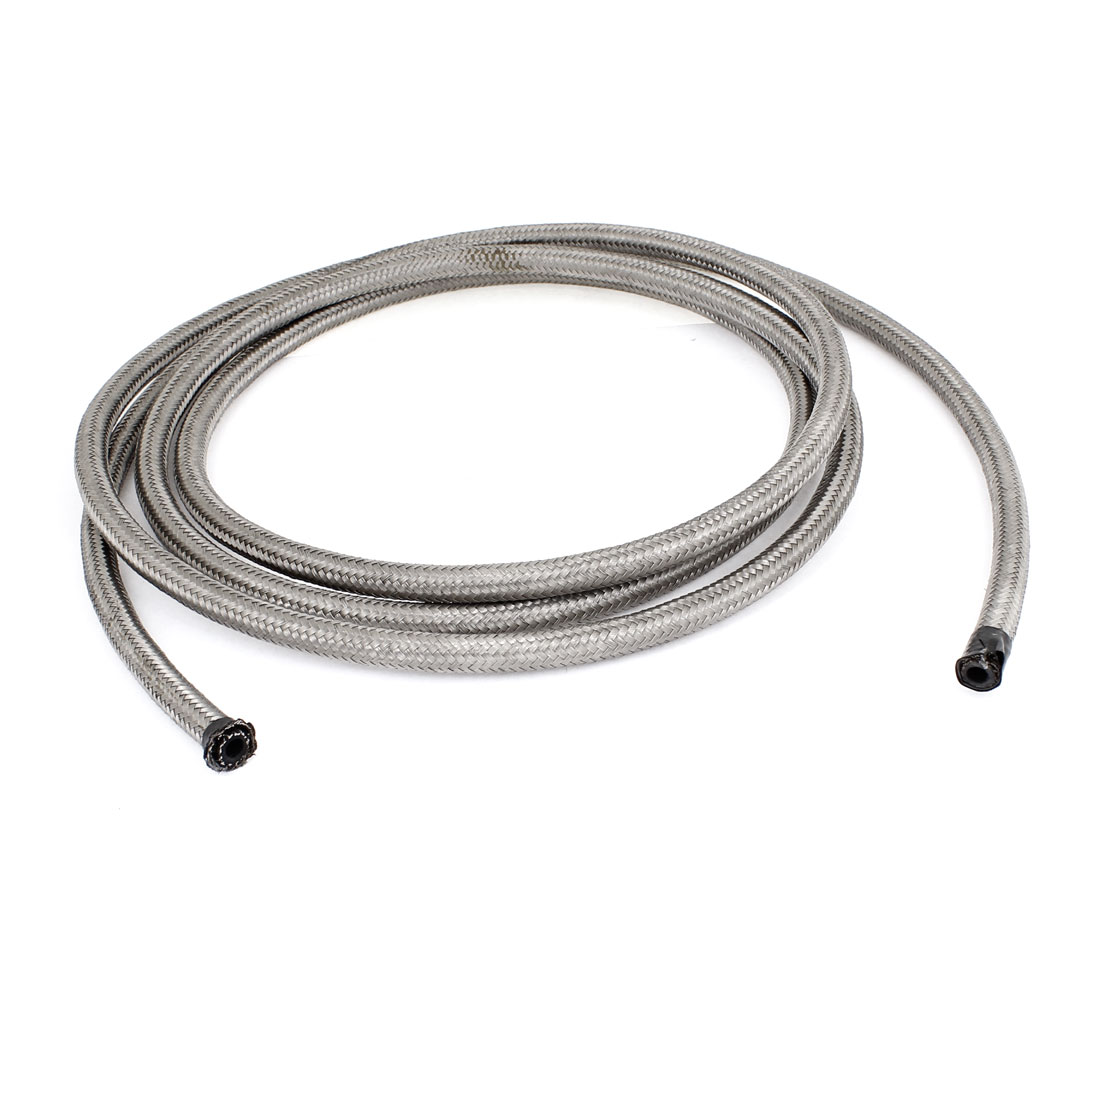 10Ft -4 AN 1200 PSI Stainless Steel Oil Fuel Line Cooler Tubing Hose for Car